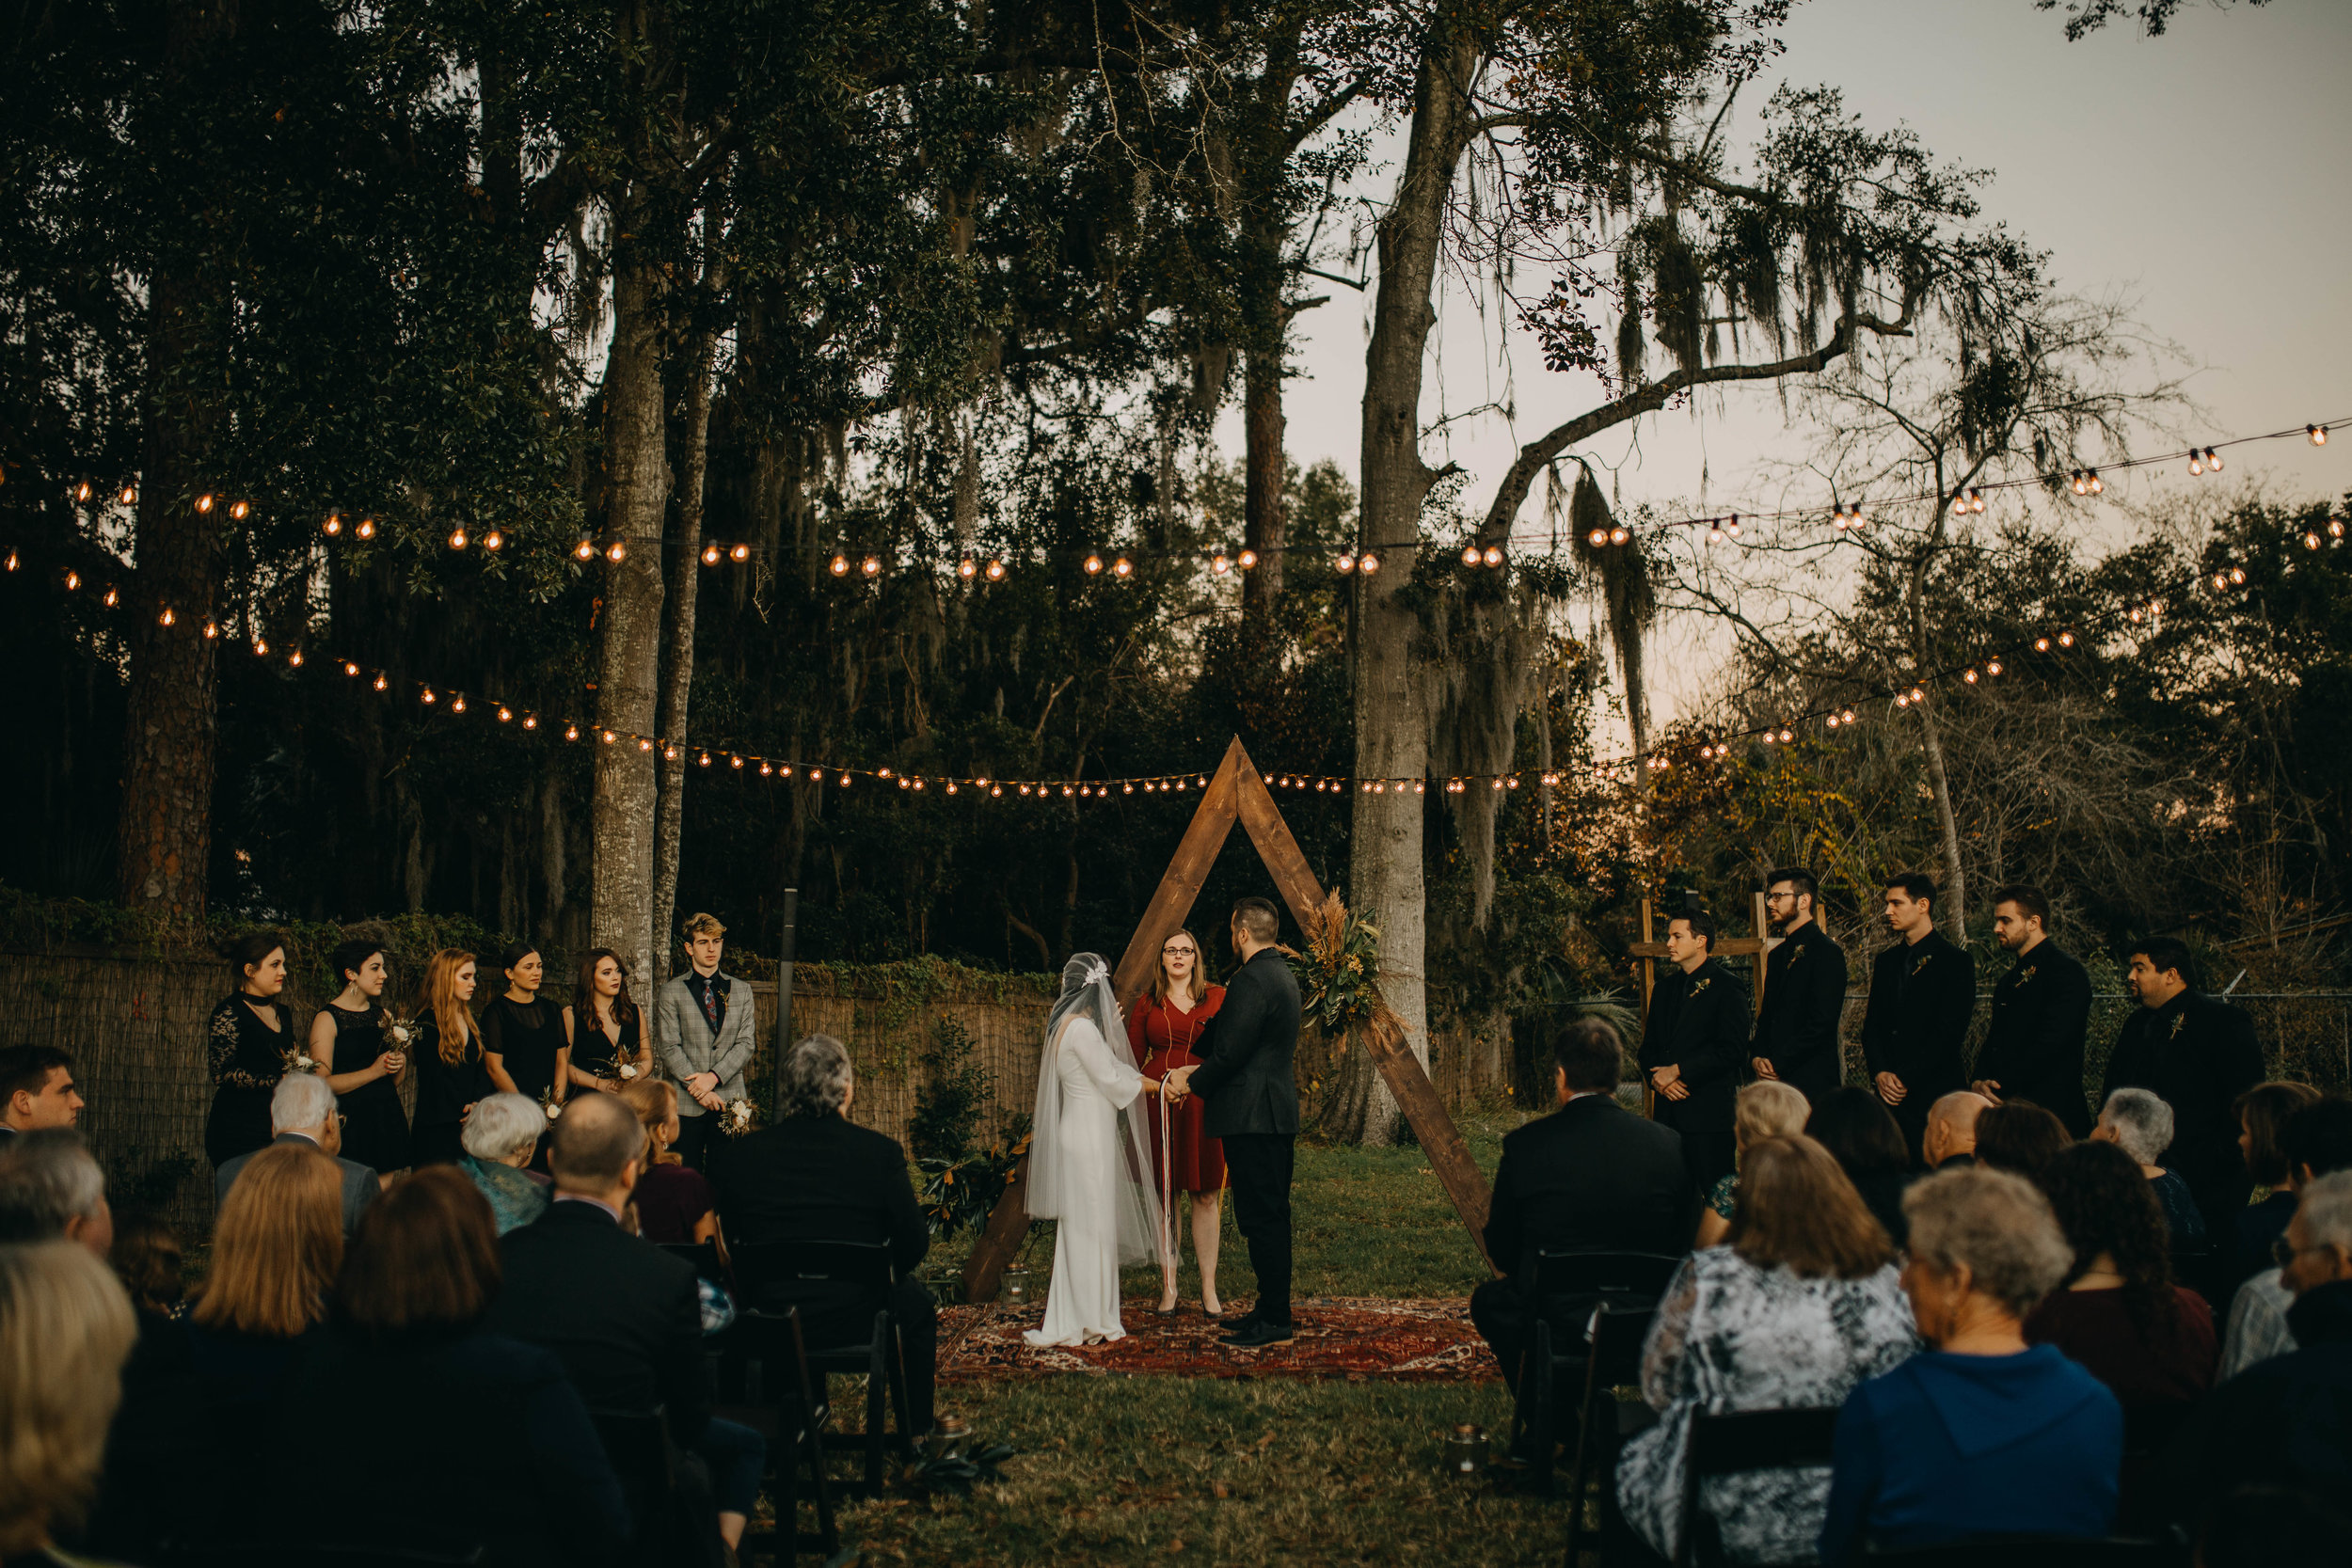 Boho Outdoor Ceremony with String Lights | American Traditional Tattoo Themed Eco Friendly Dark Florida Wedding